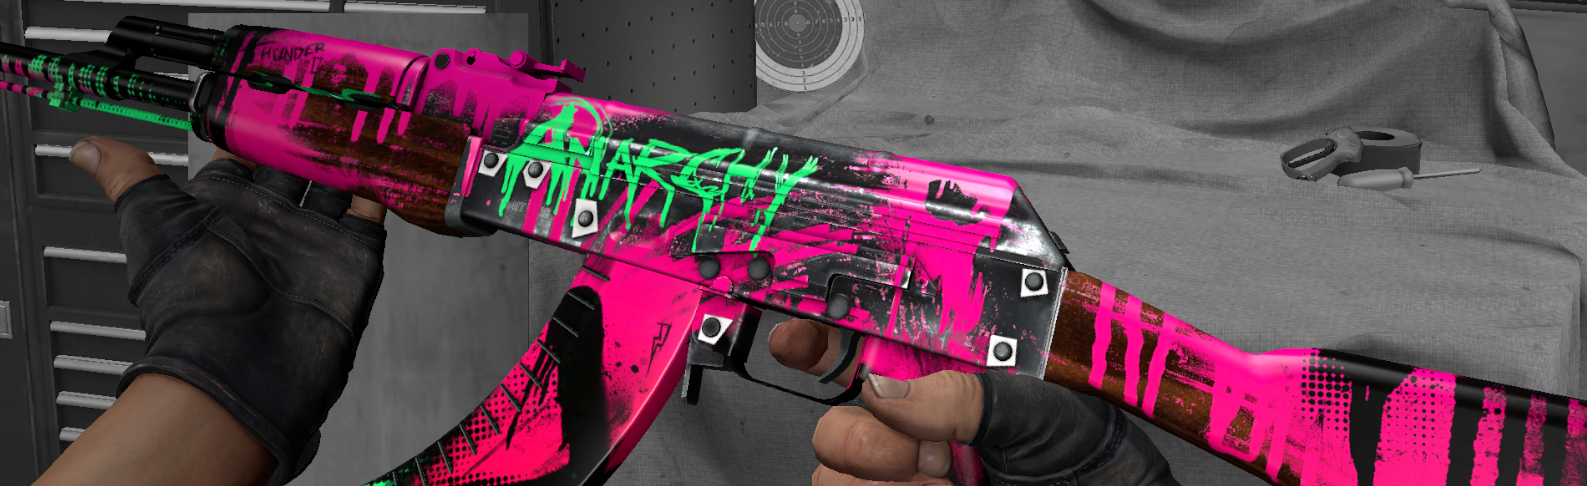 AK47_Neon_anarchy_Hands